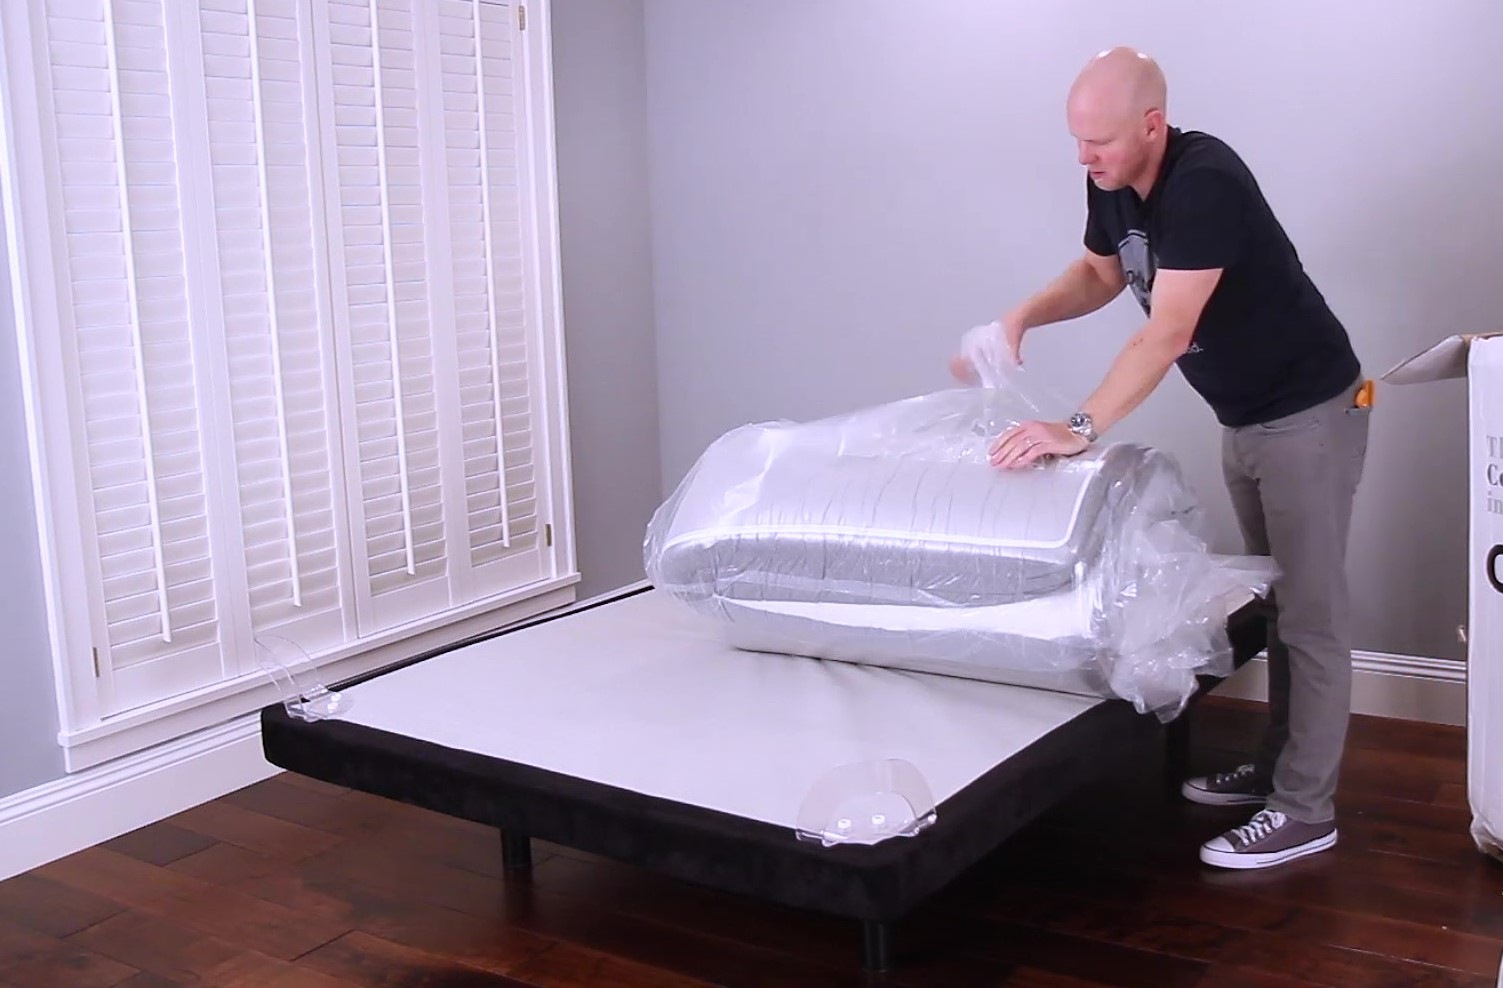 GhostBed Luxe Mattress Unboxing